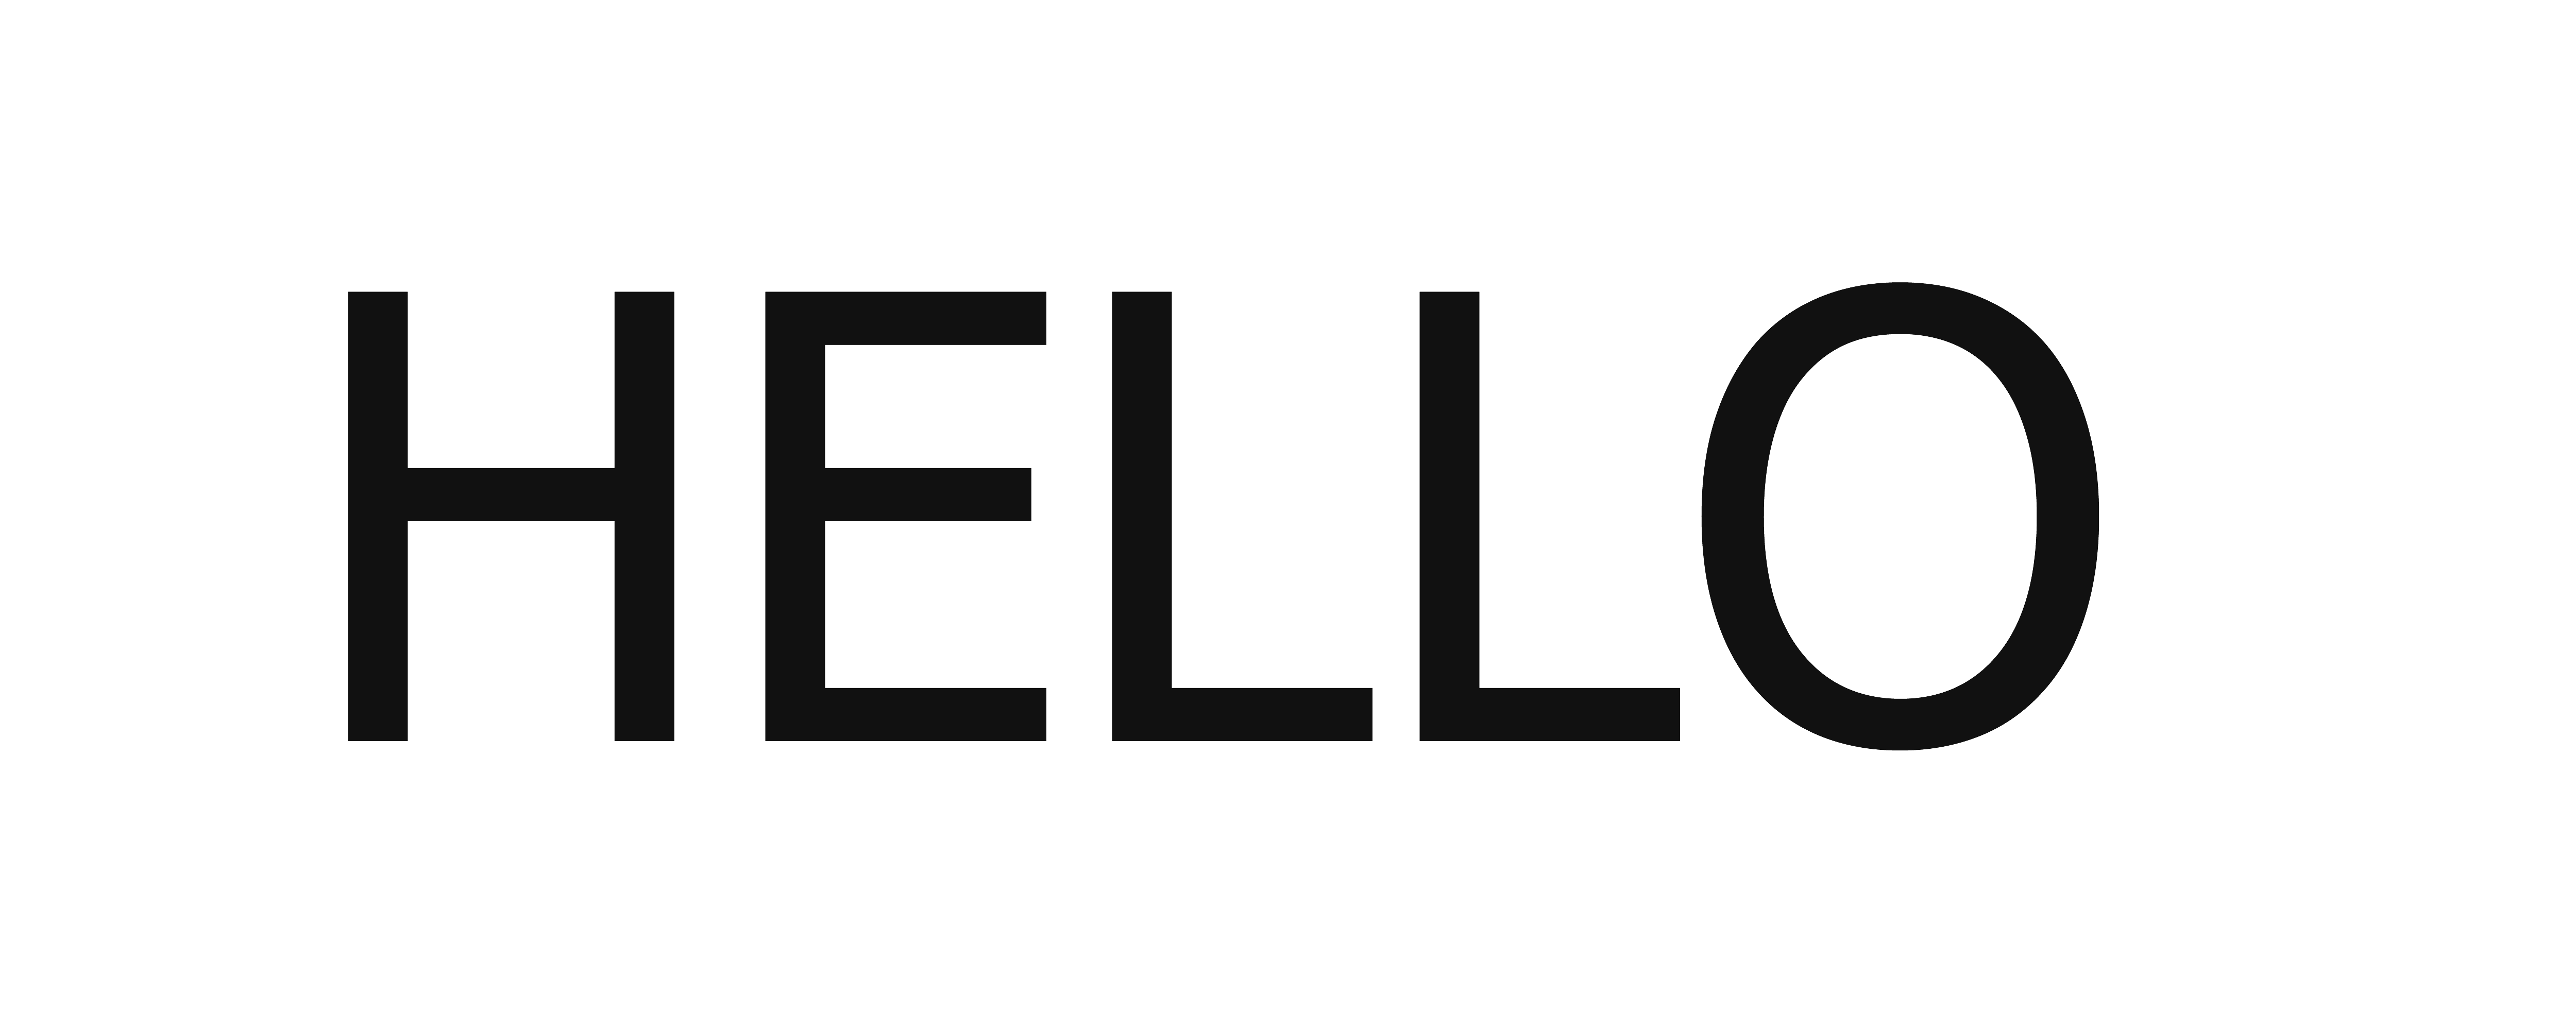 Hello PNG images Download